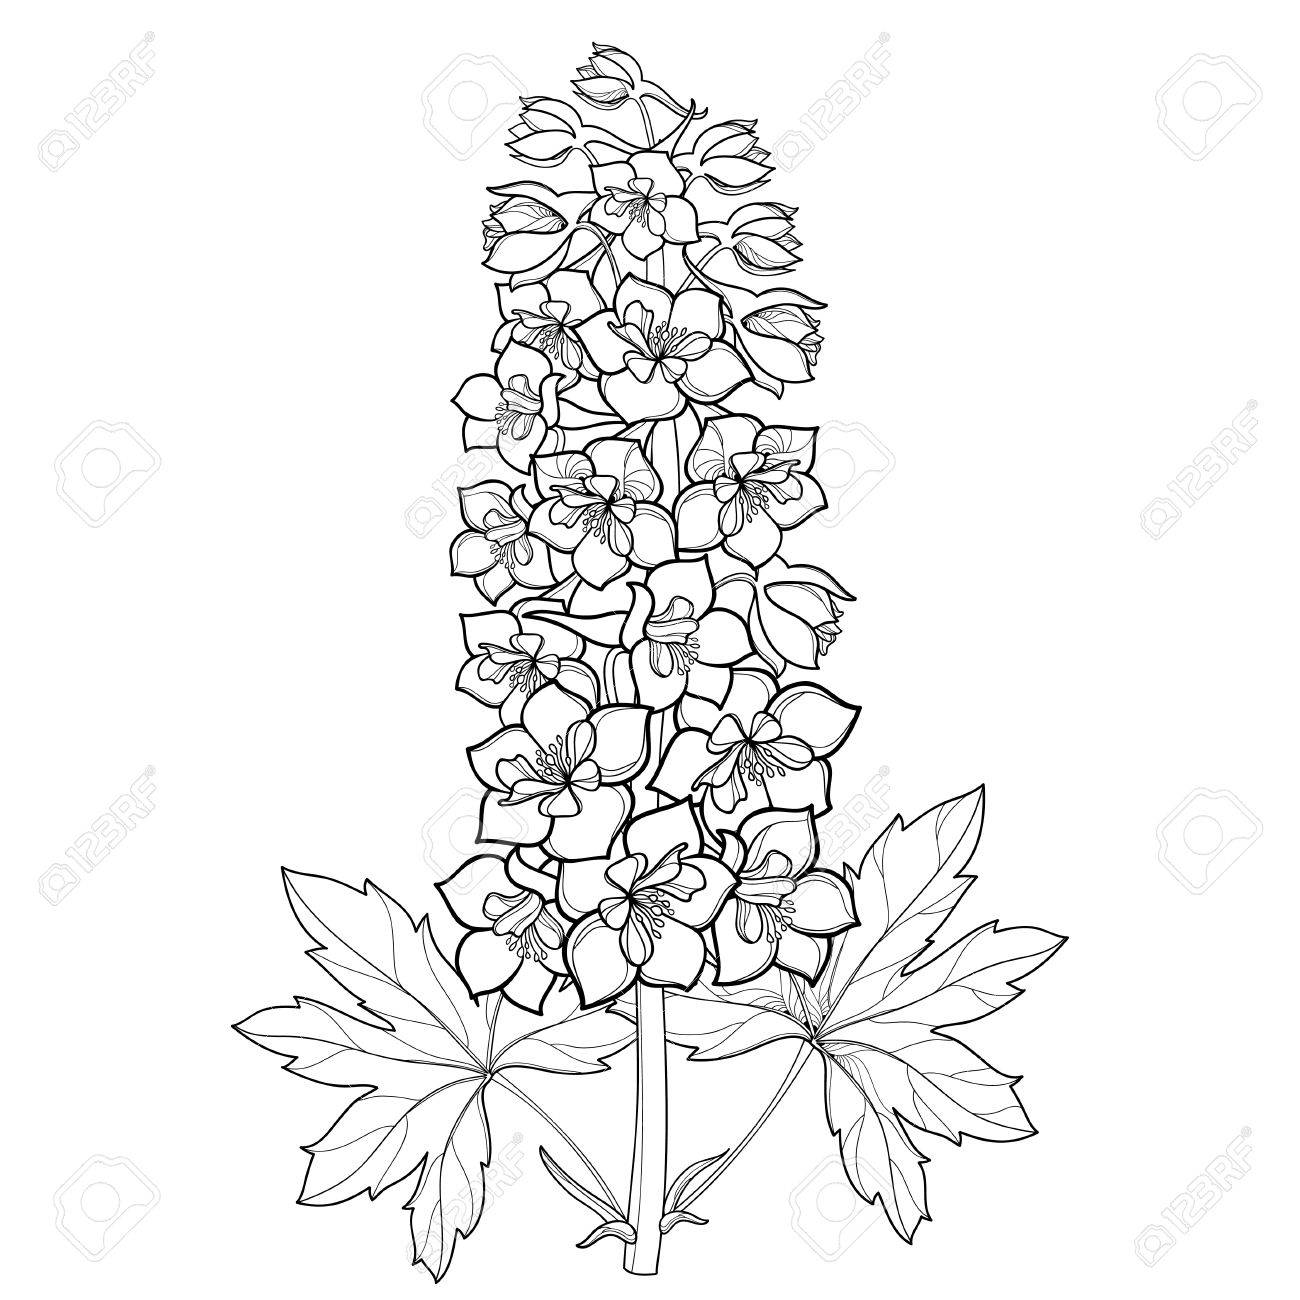 Coloring Page Bunch With Delphinium Or Larkspur Flower Stem Bud And Leaf In Black Isolated